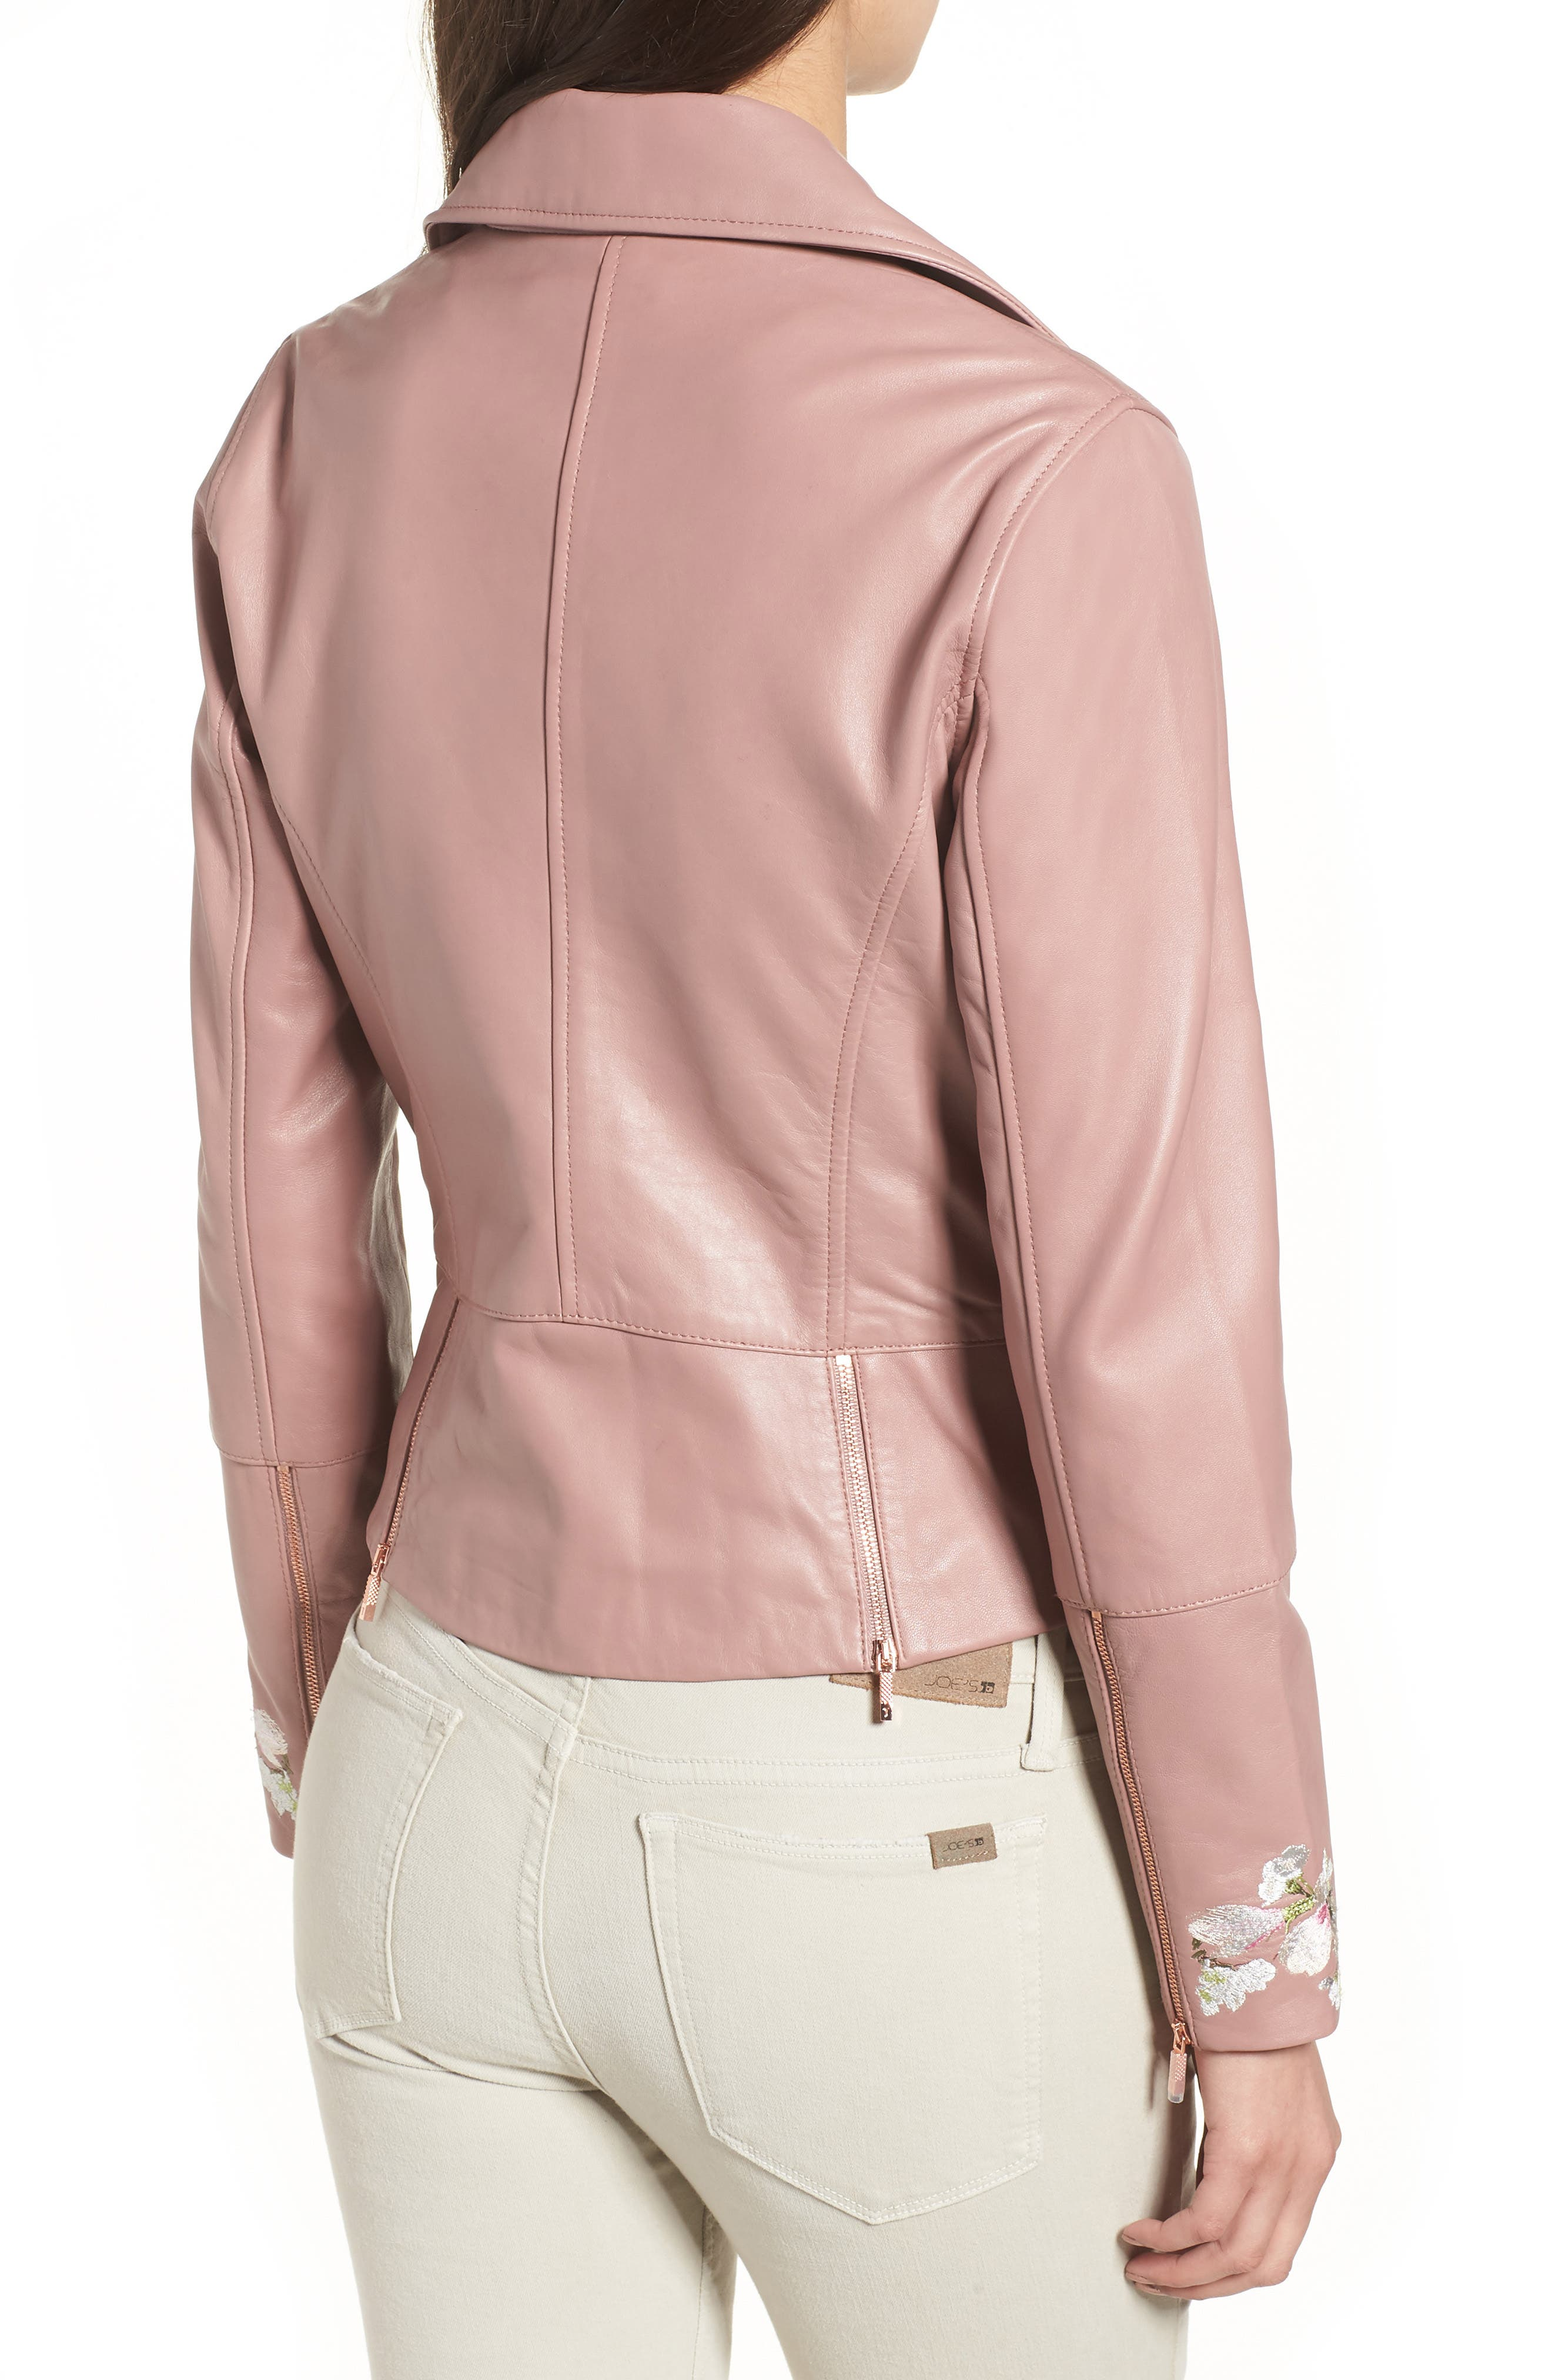 Harmony Embroidered Leather Biker Jacket,                             Alternate thumbnail 2, color,                             652